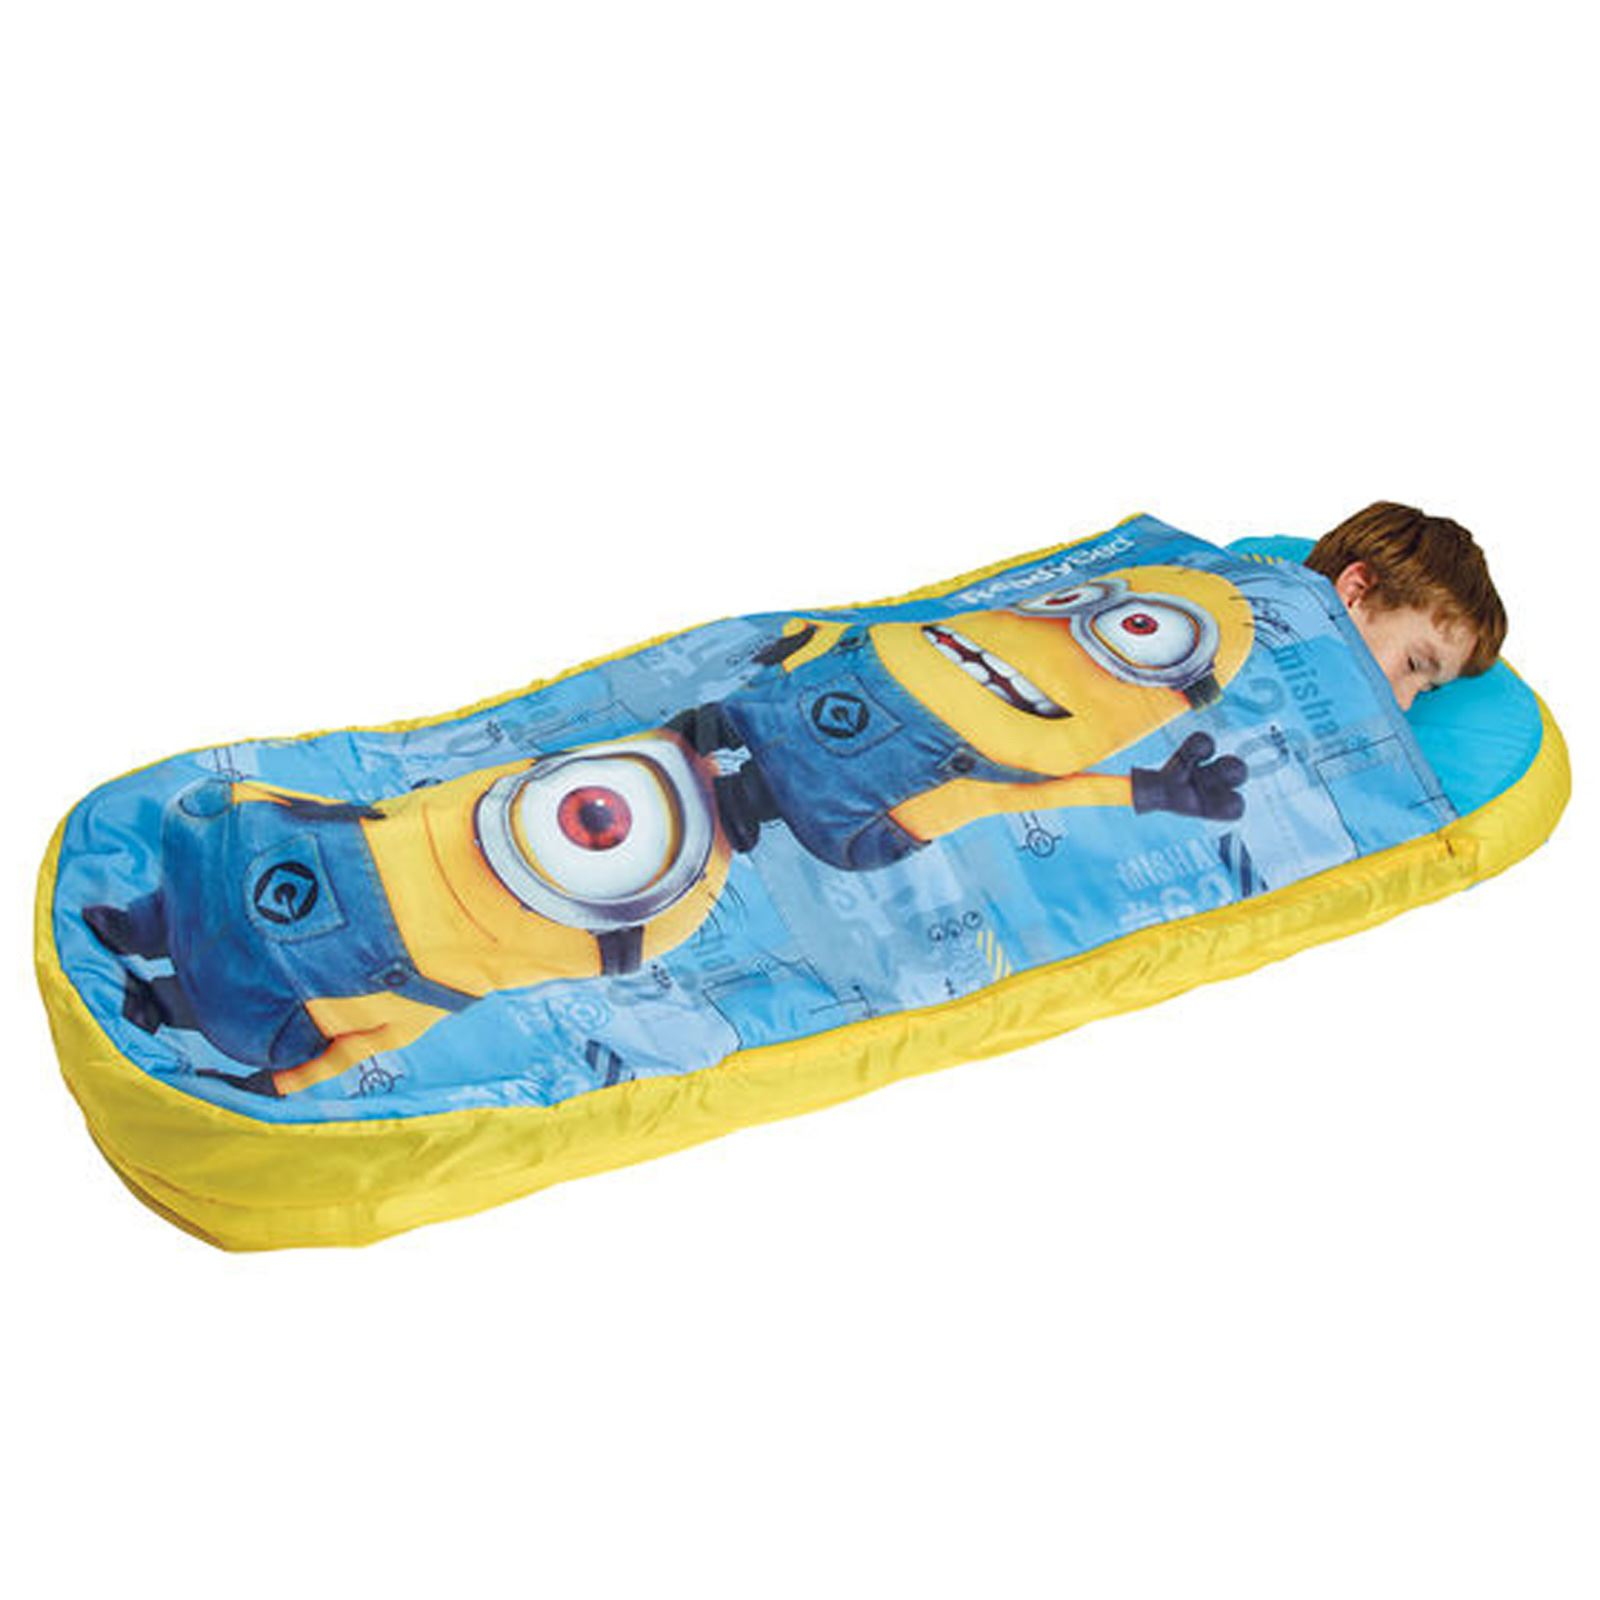 KIDS READY BED INFLATABLE AIR BEDS IDEAL FOR CAMPING